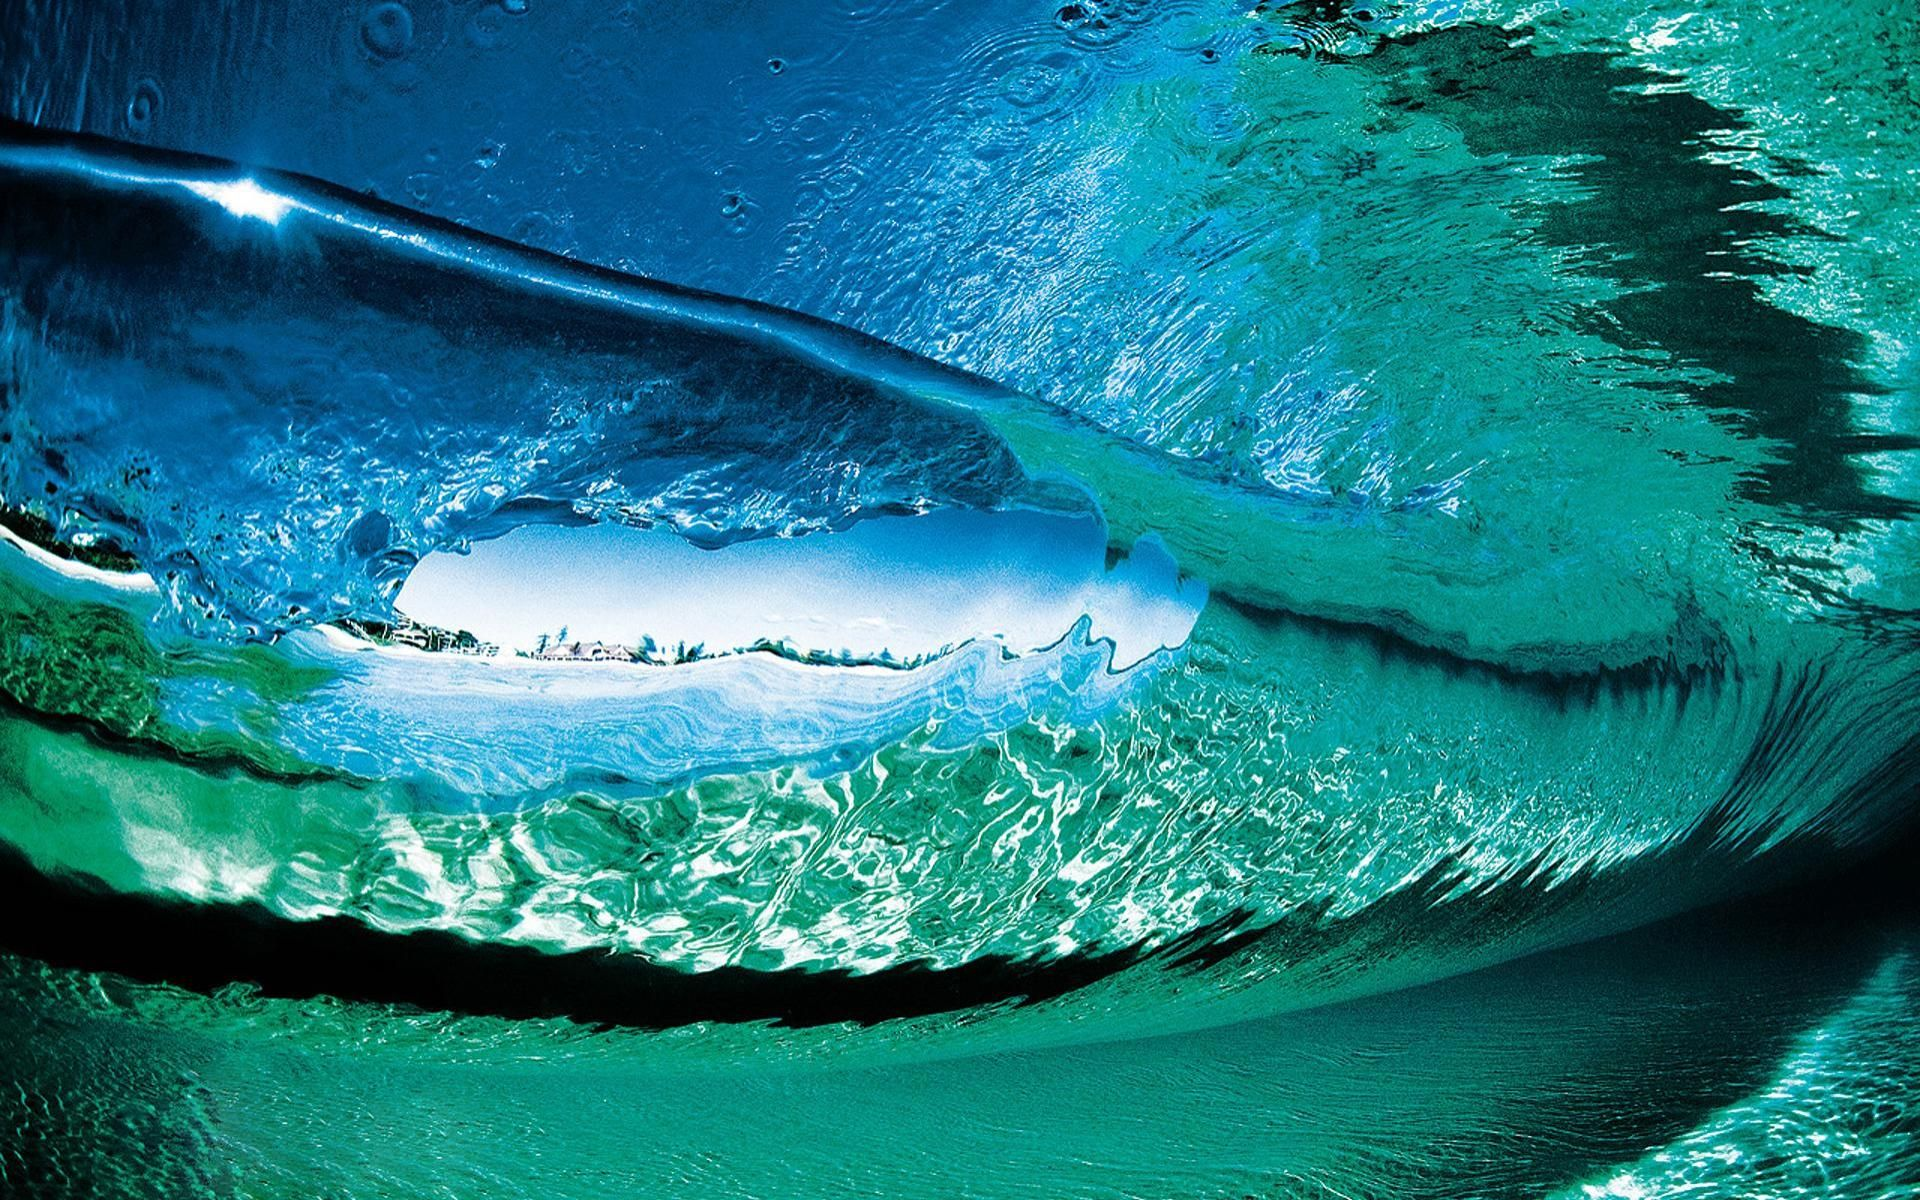 17 Best images about Ocean Waves on Pinterest | Surf, Atlantic ...